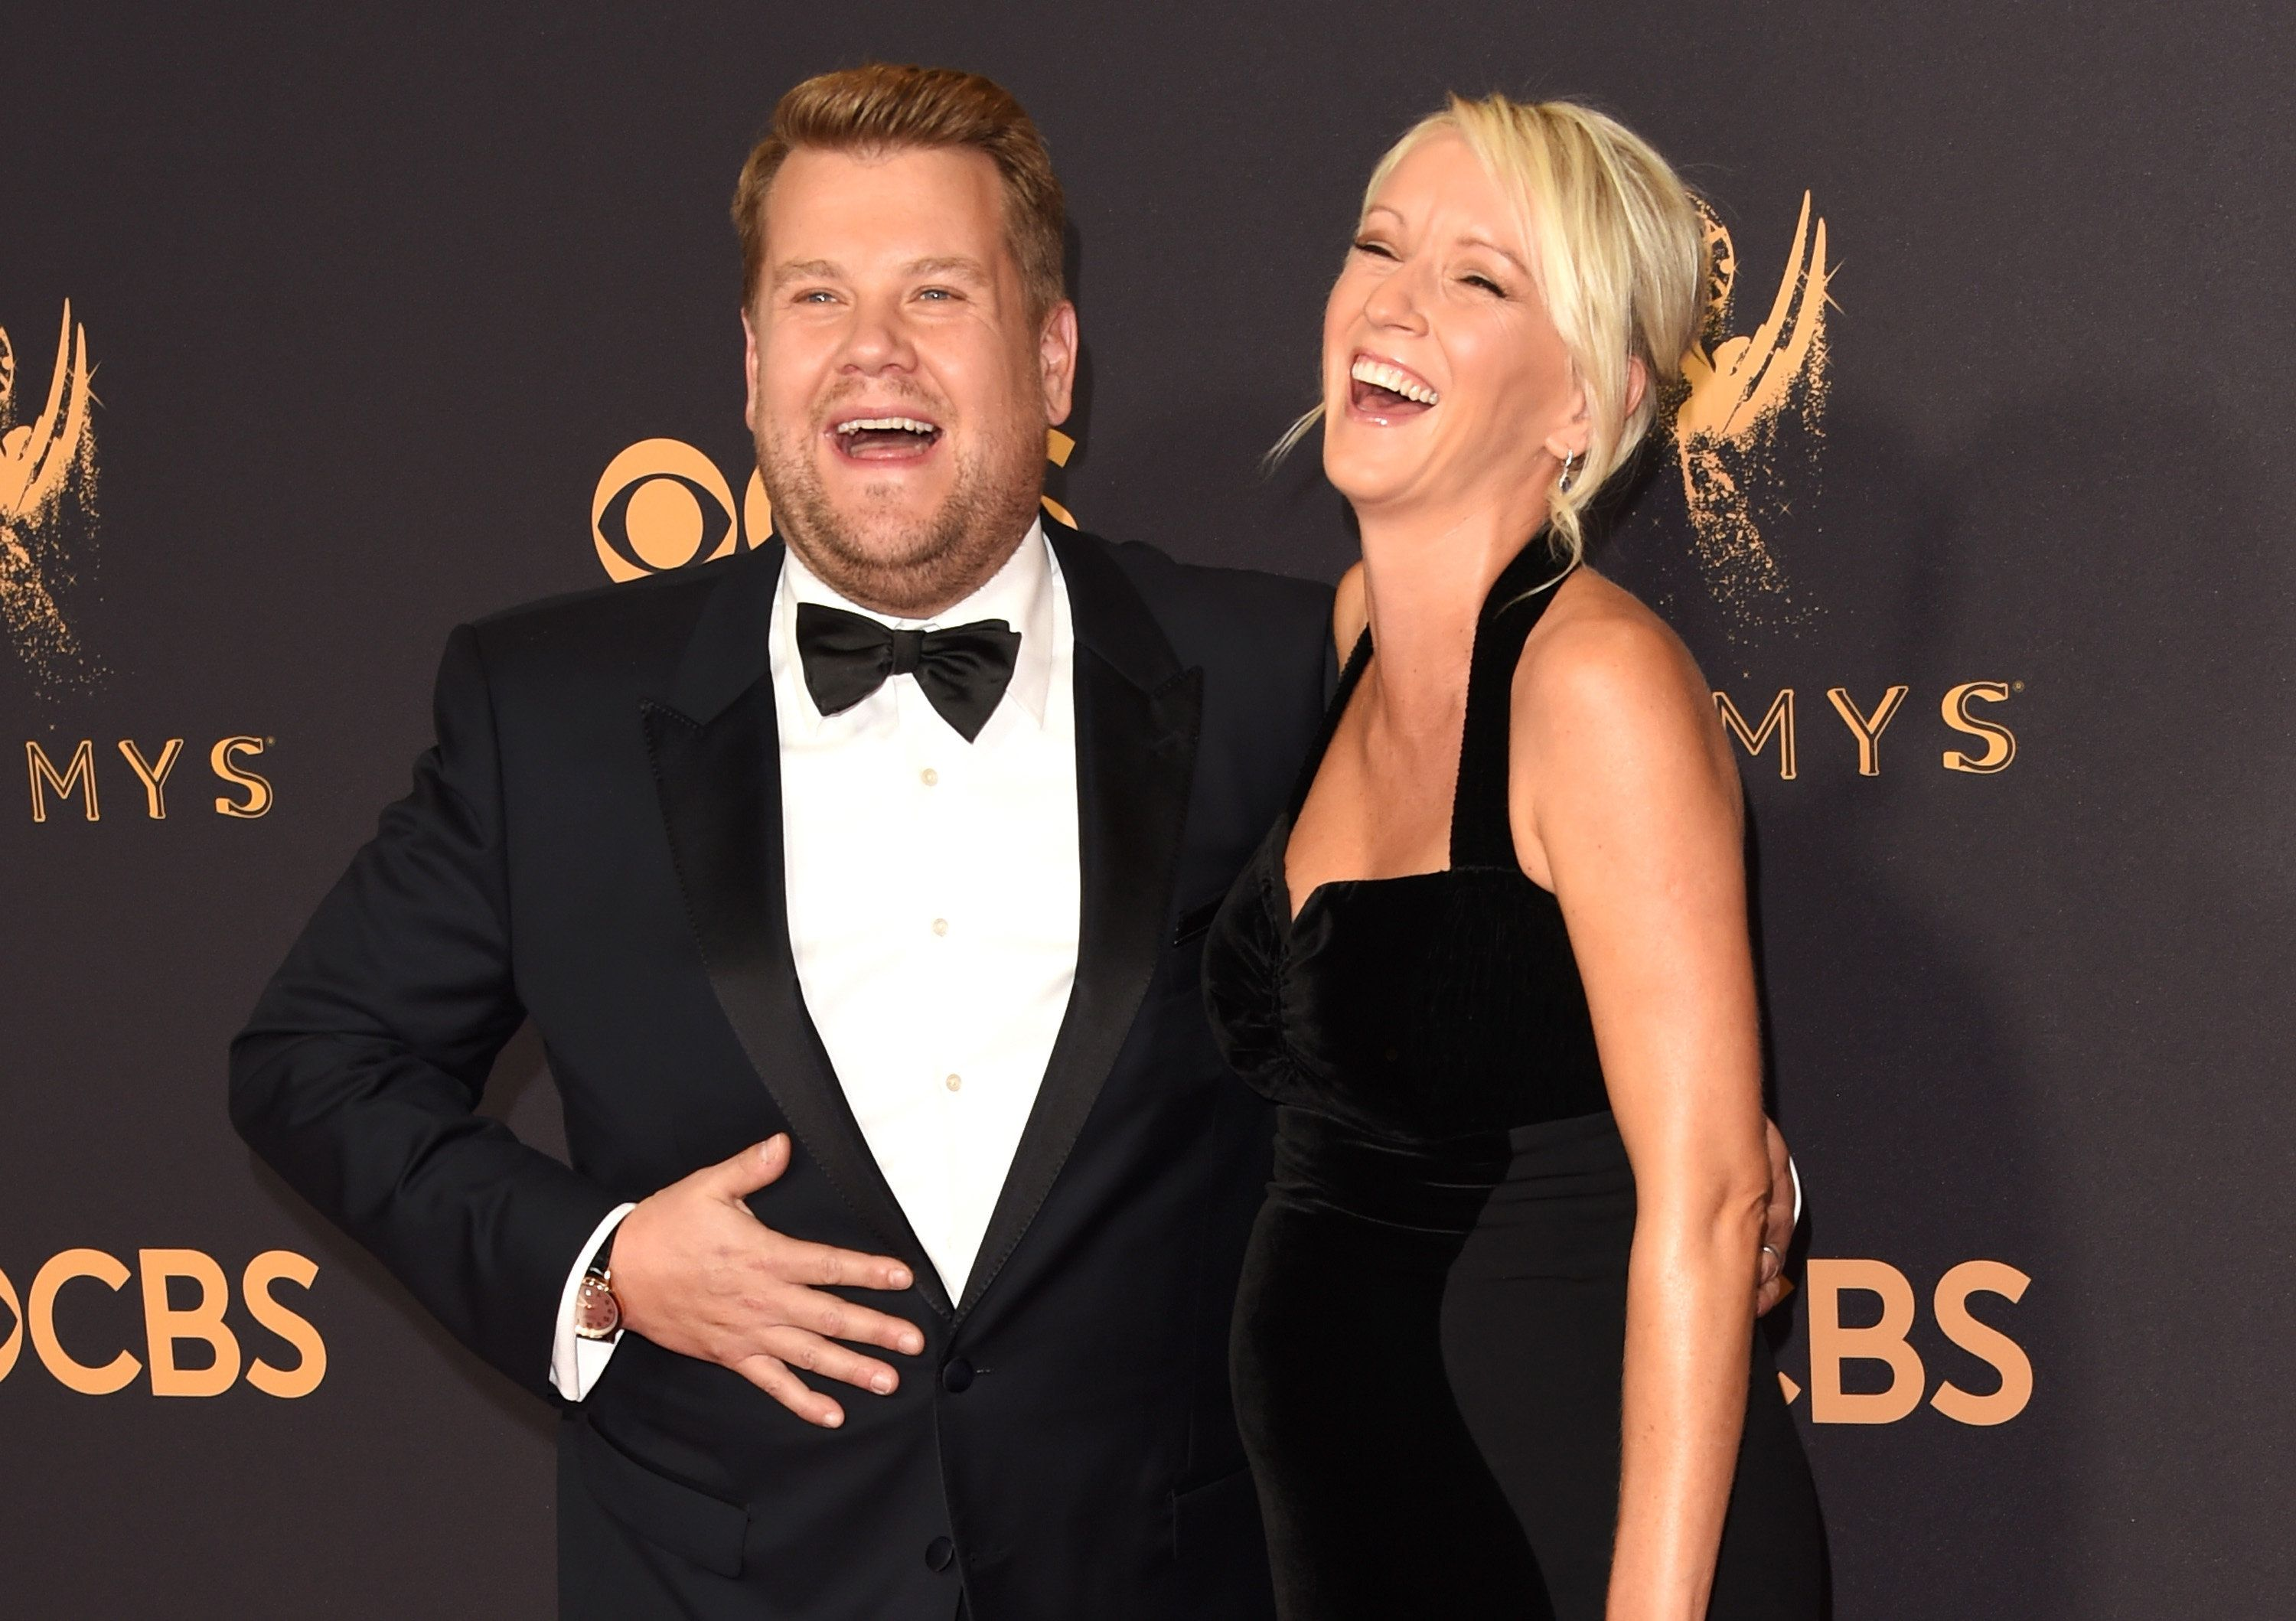 James Corden's Wife Julia Carey Has Given Birth To Their Third